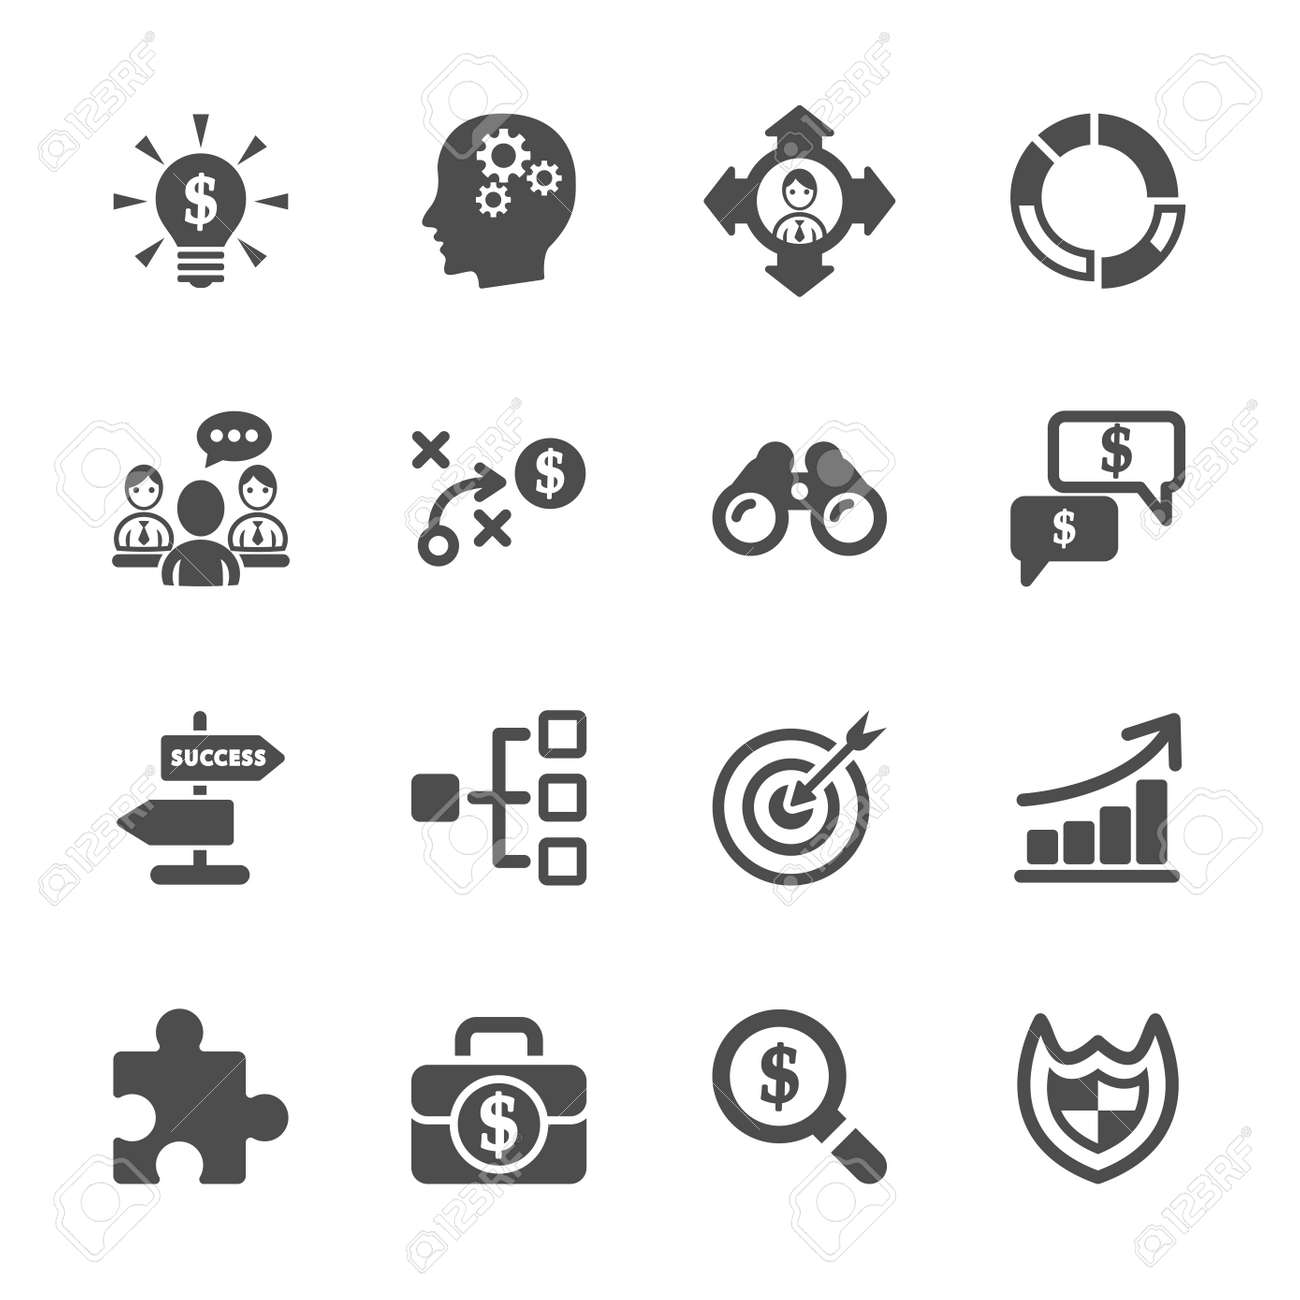 business strategy icon set - 36112043